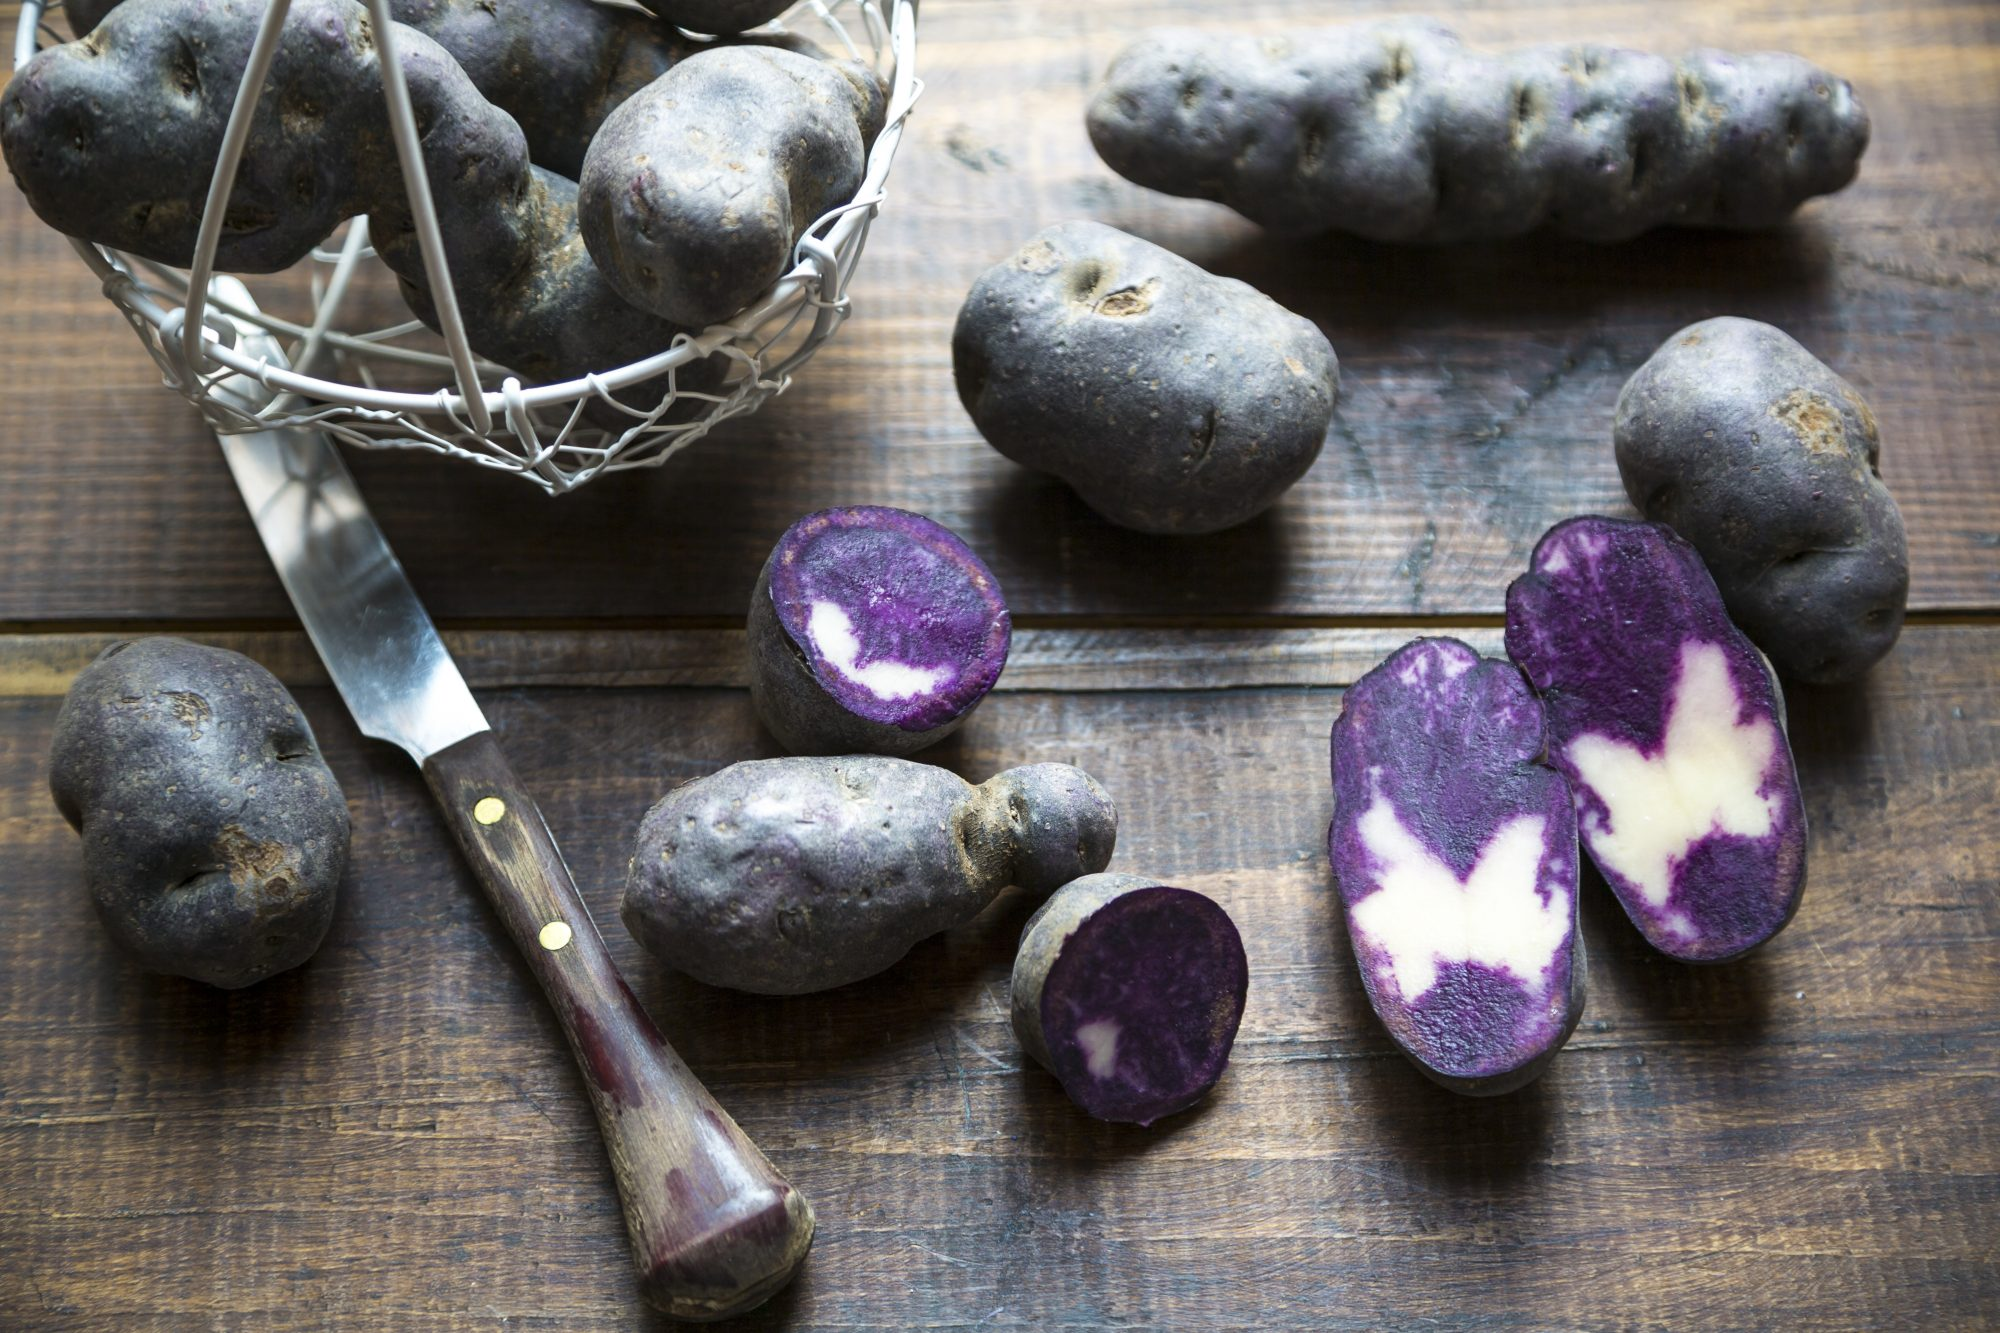 purple-potato-yum-healthy